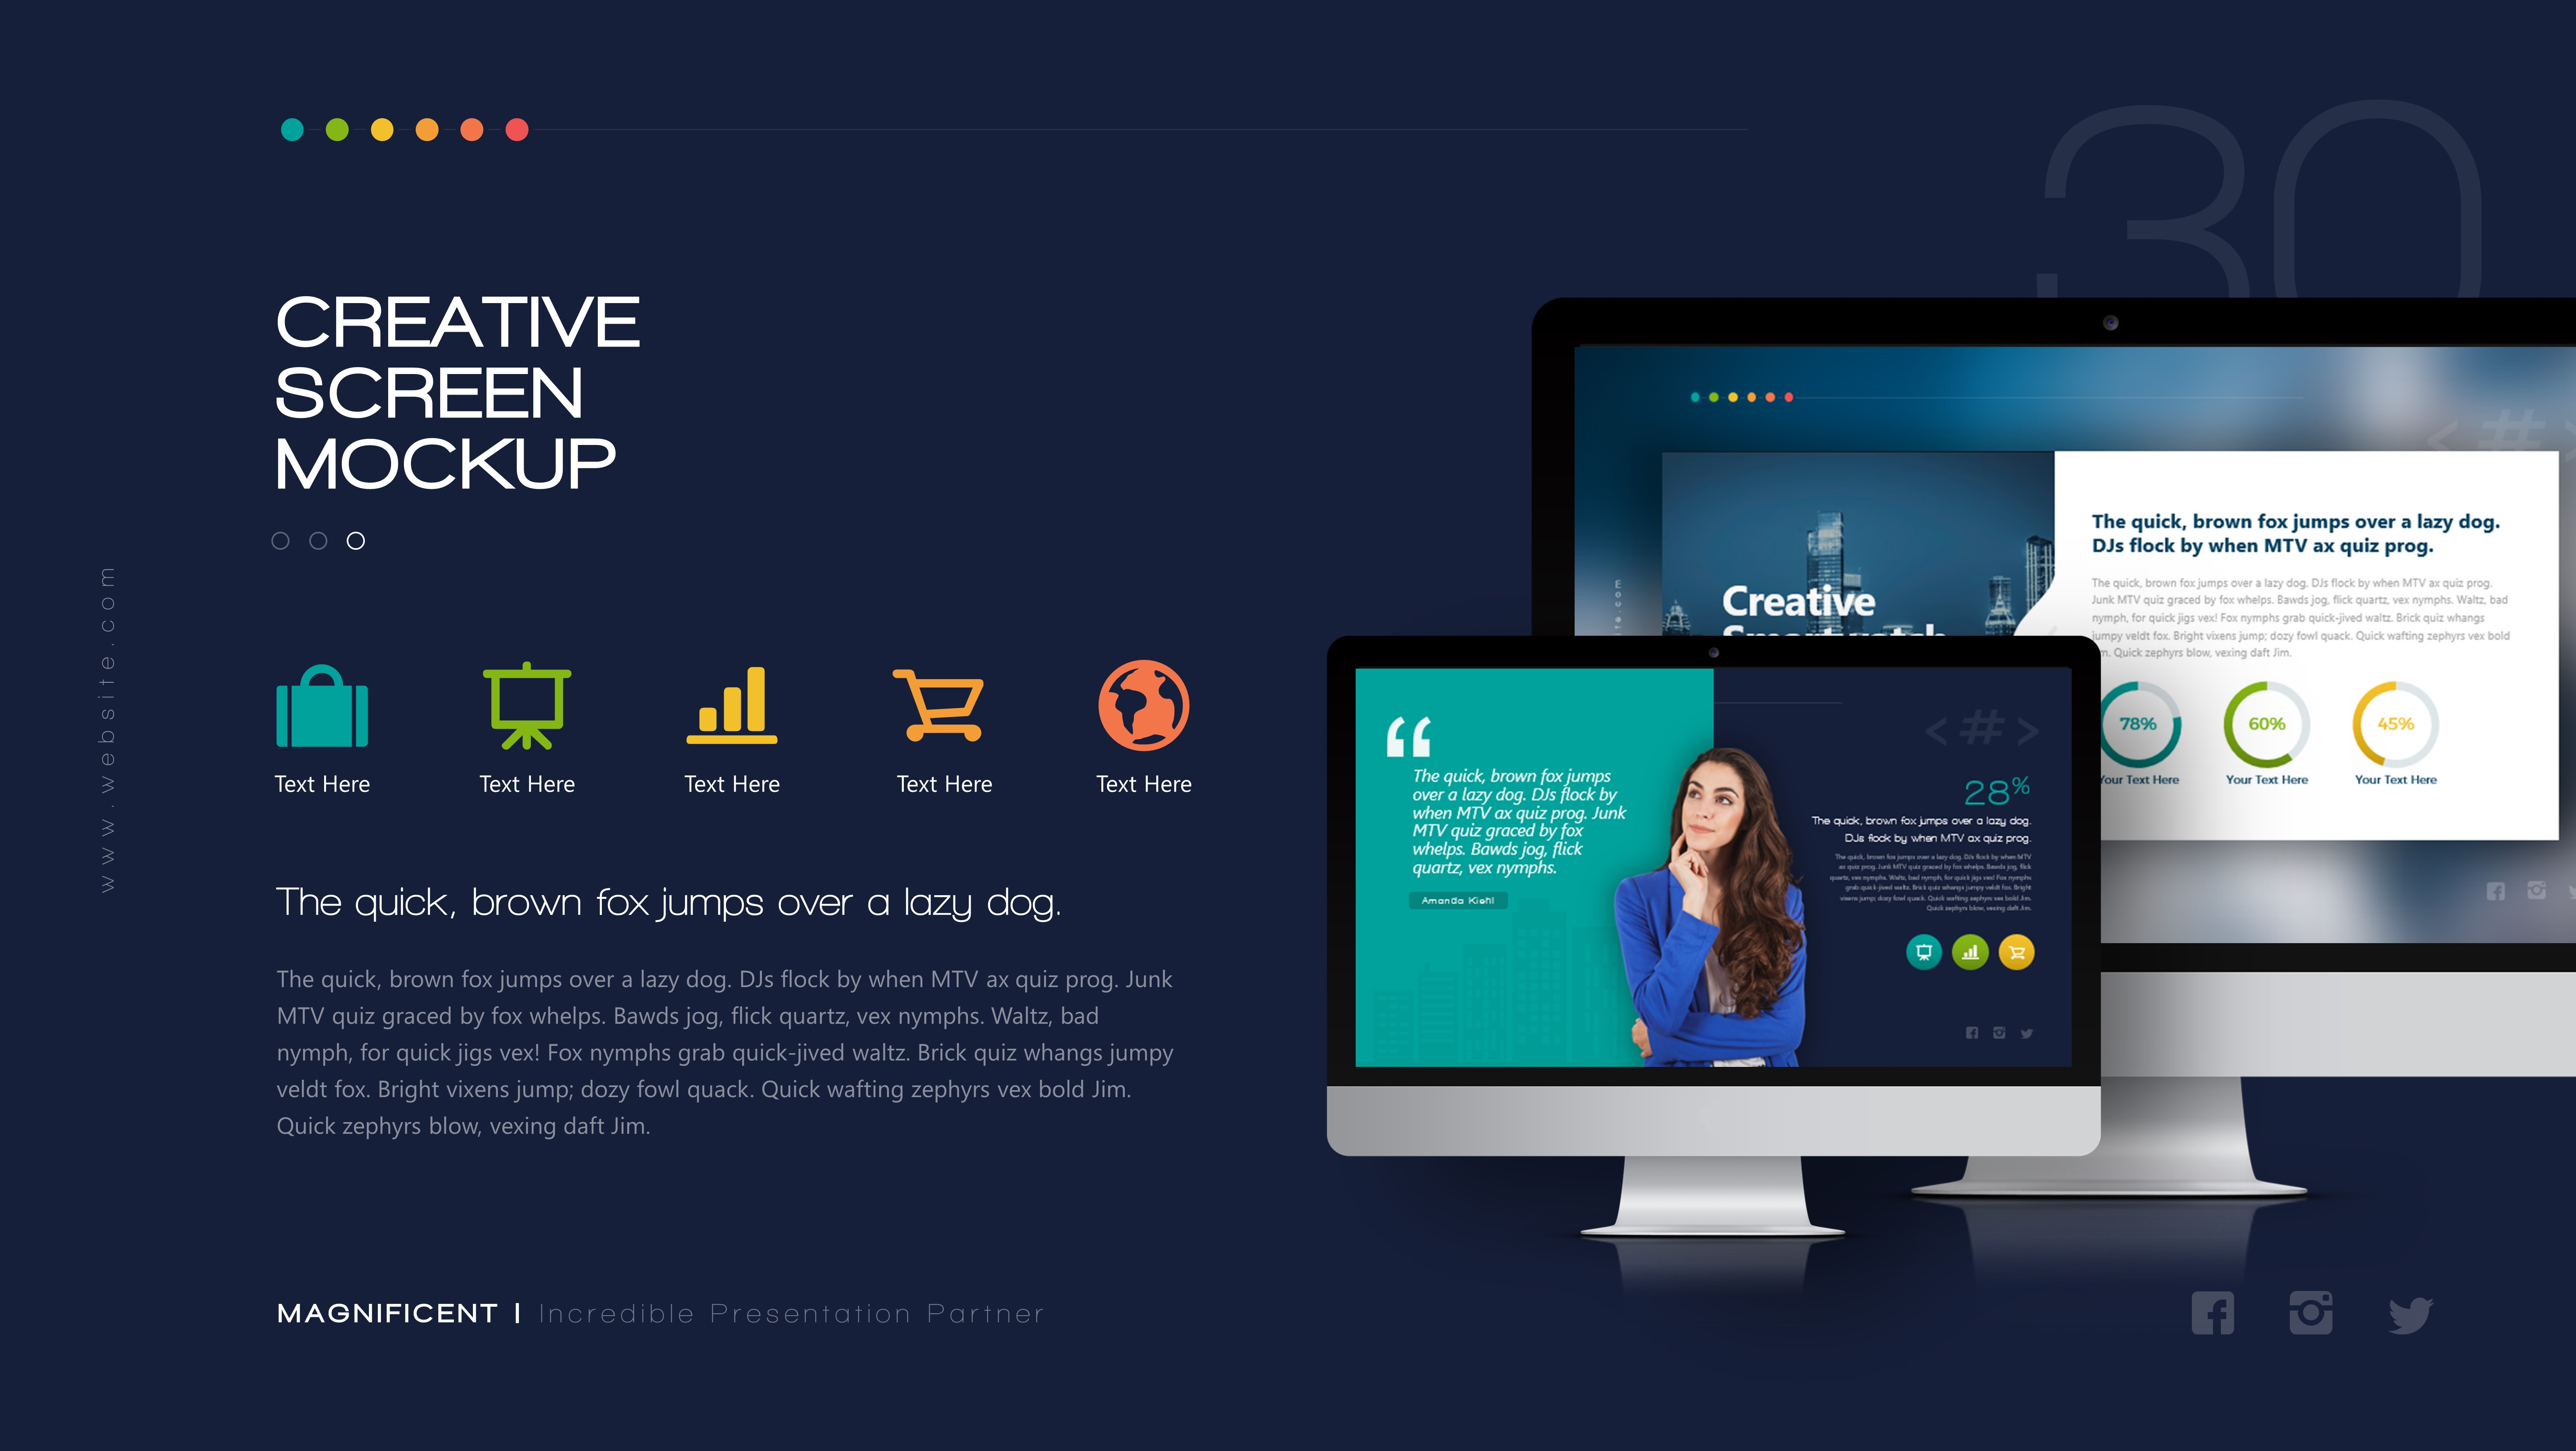 Game show powerpoint template choice image templates example free comfortable quiz show template contemporary example resume and powerpoint template game show image collections templates alramifo toneelgroepblik Choice Image